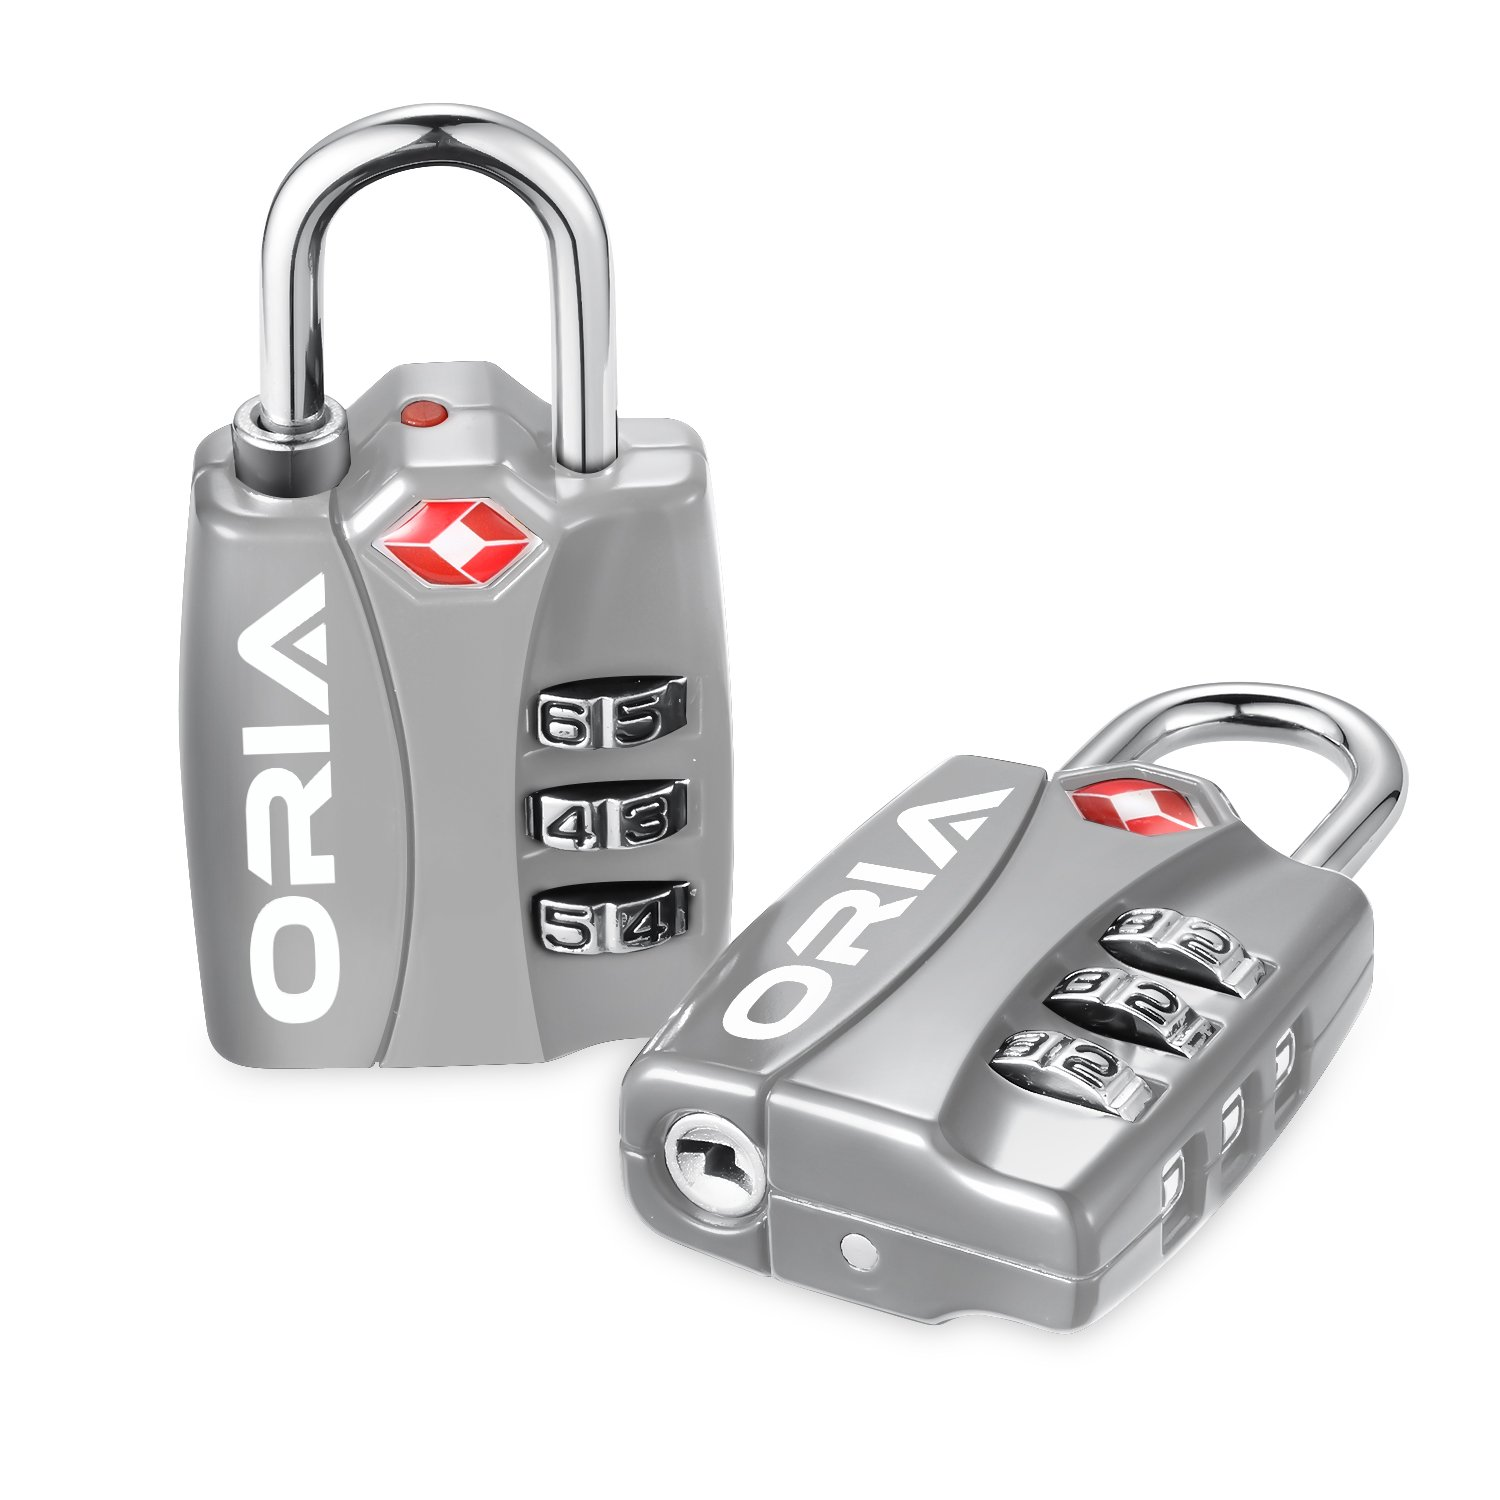 Oria Combination Padlock (2 Pack), 3 Digit TSA Luggage Locks, Number Code Locks for Gym Locker, Luggage Suitcase Baggage Locks, Cabinets, Toolbox, Case etc.- Silver